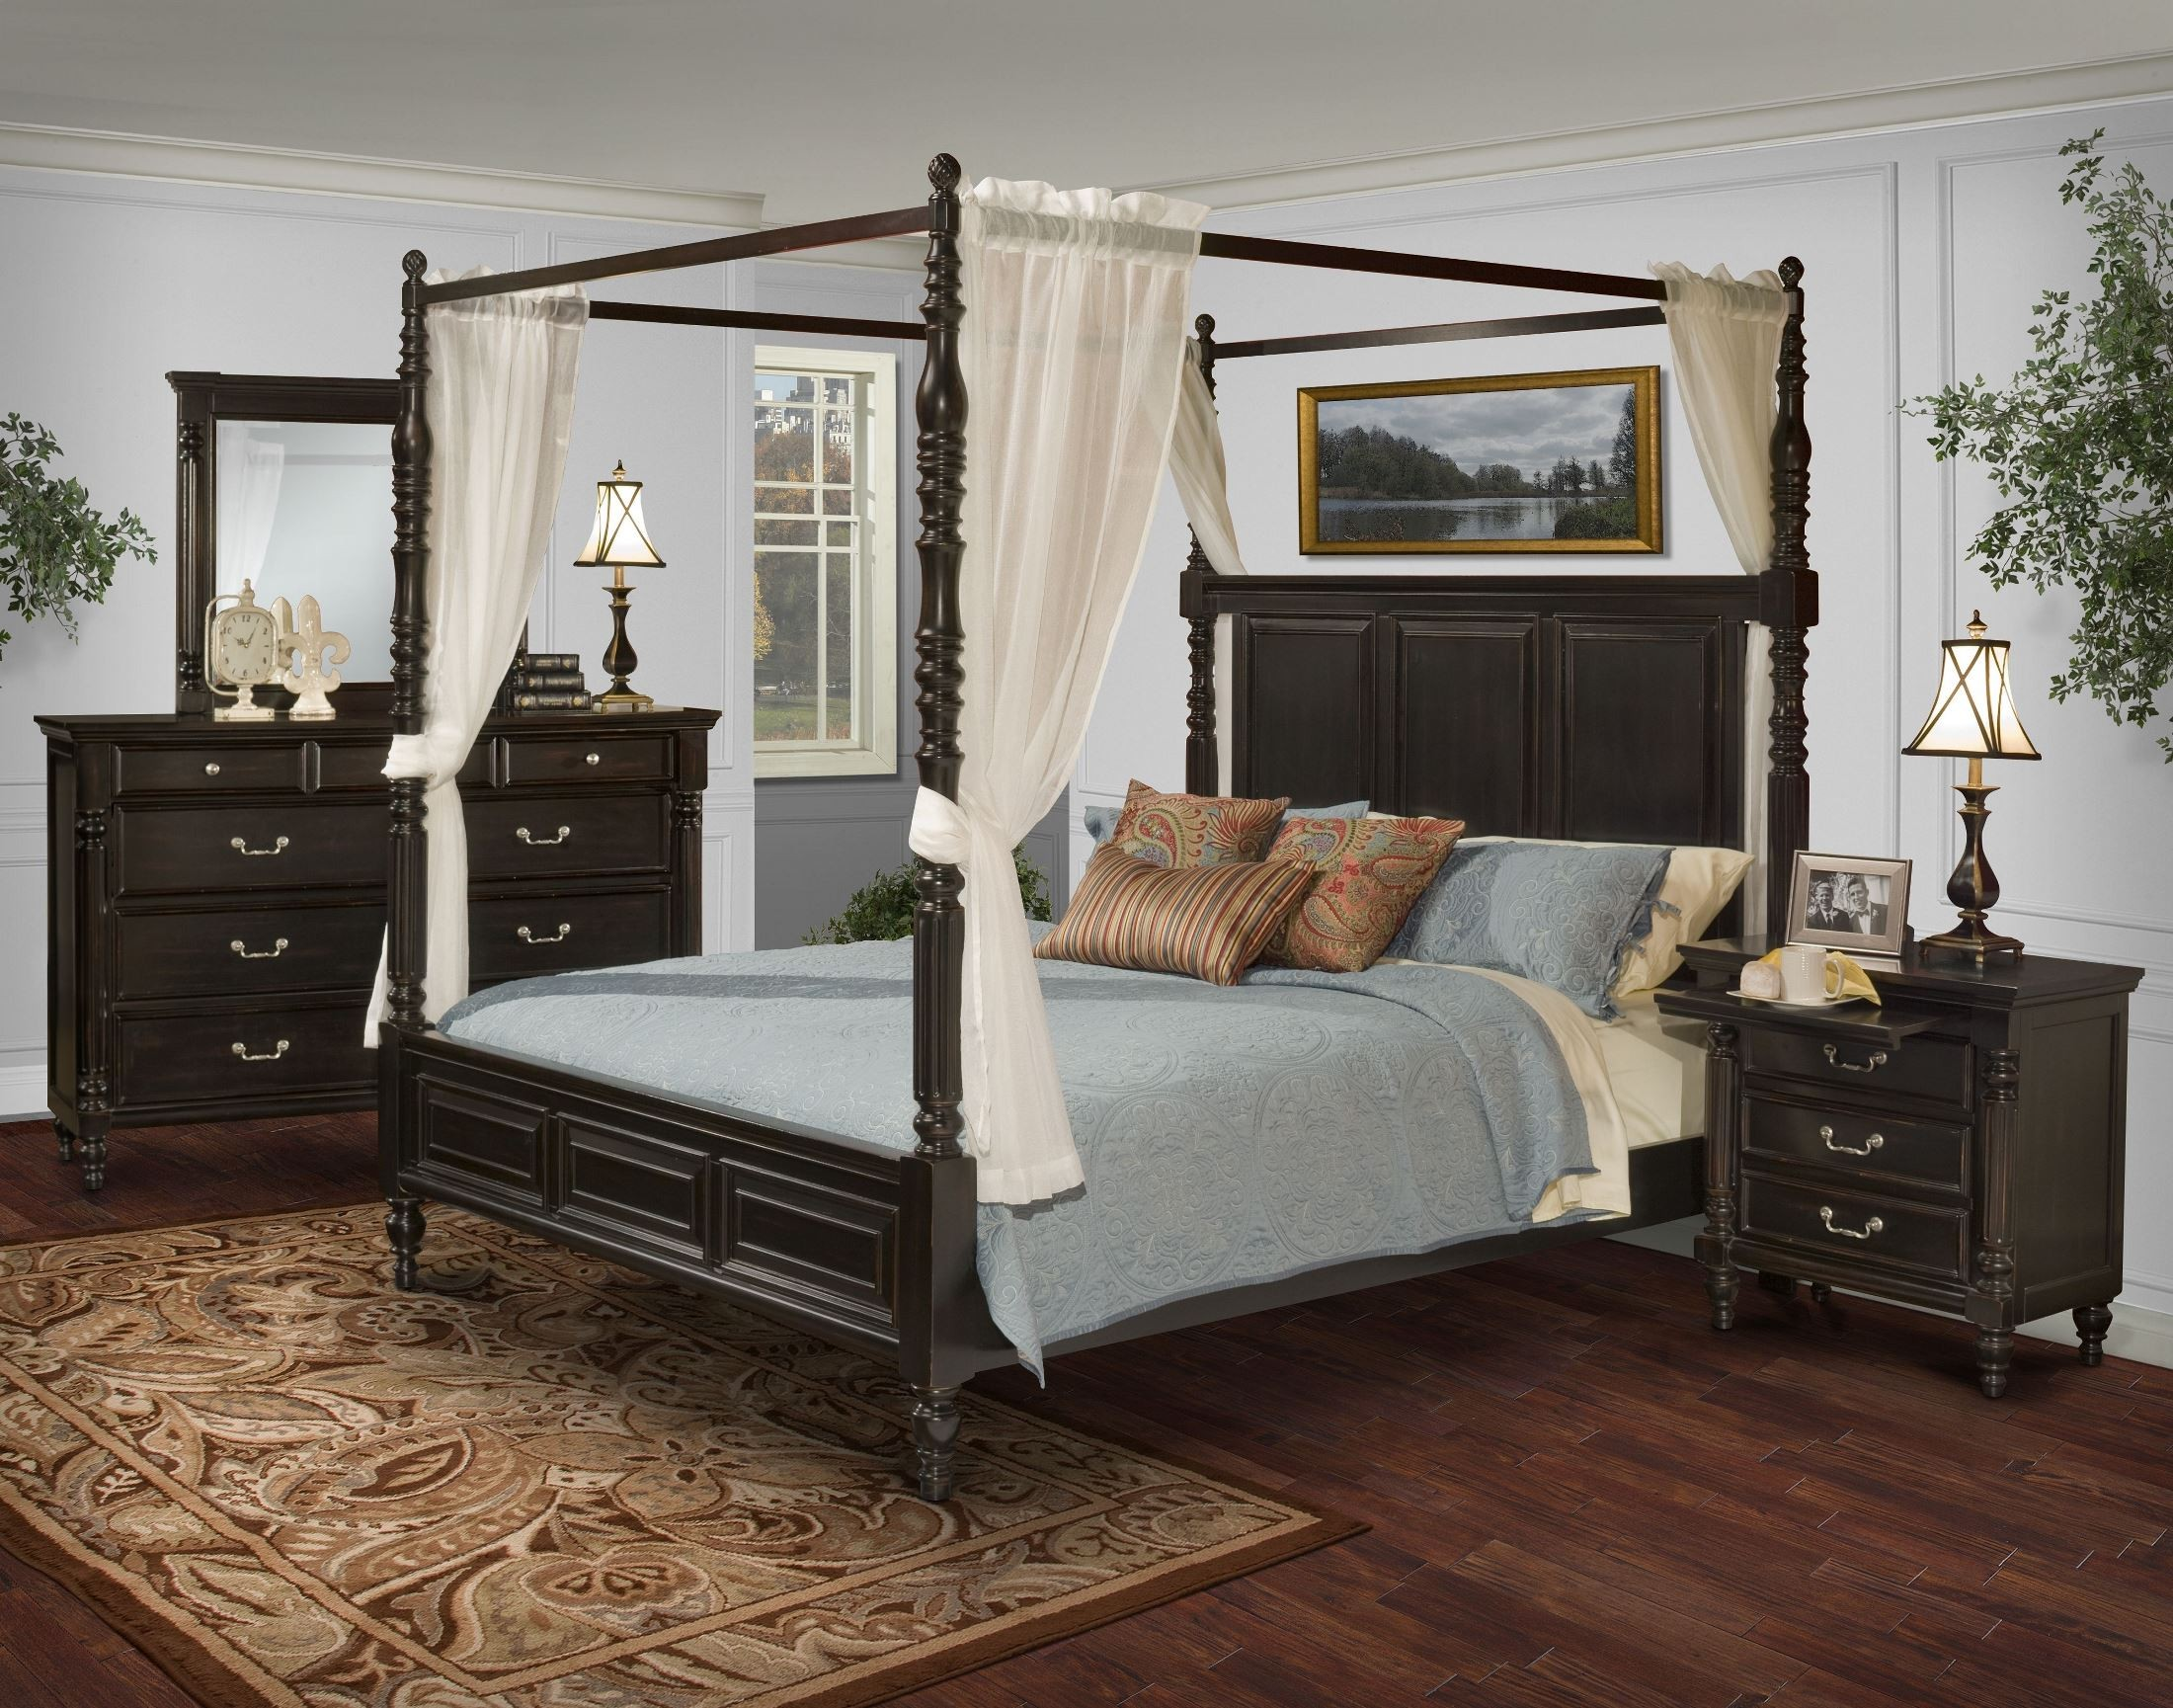 Two Bedroom Set Martinique Rubbed Black Canopy Bedroom Set With Drapes